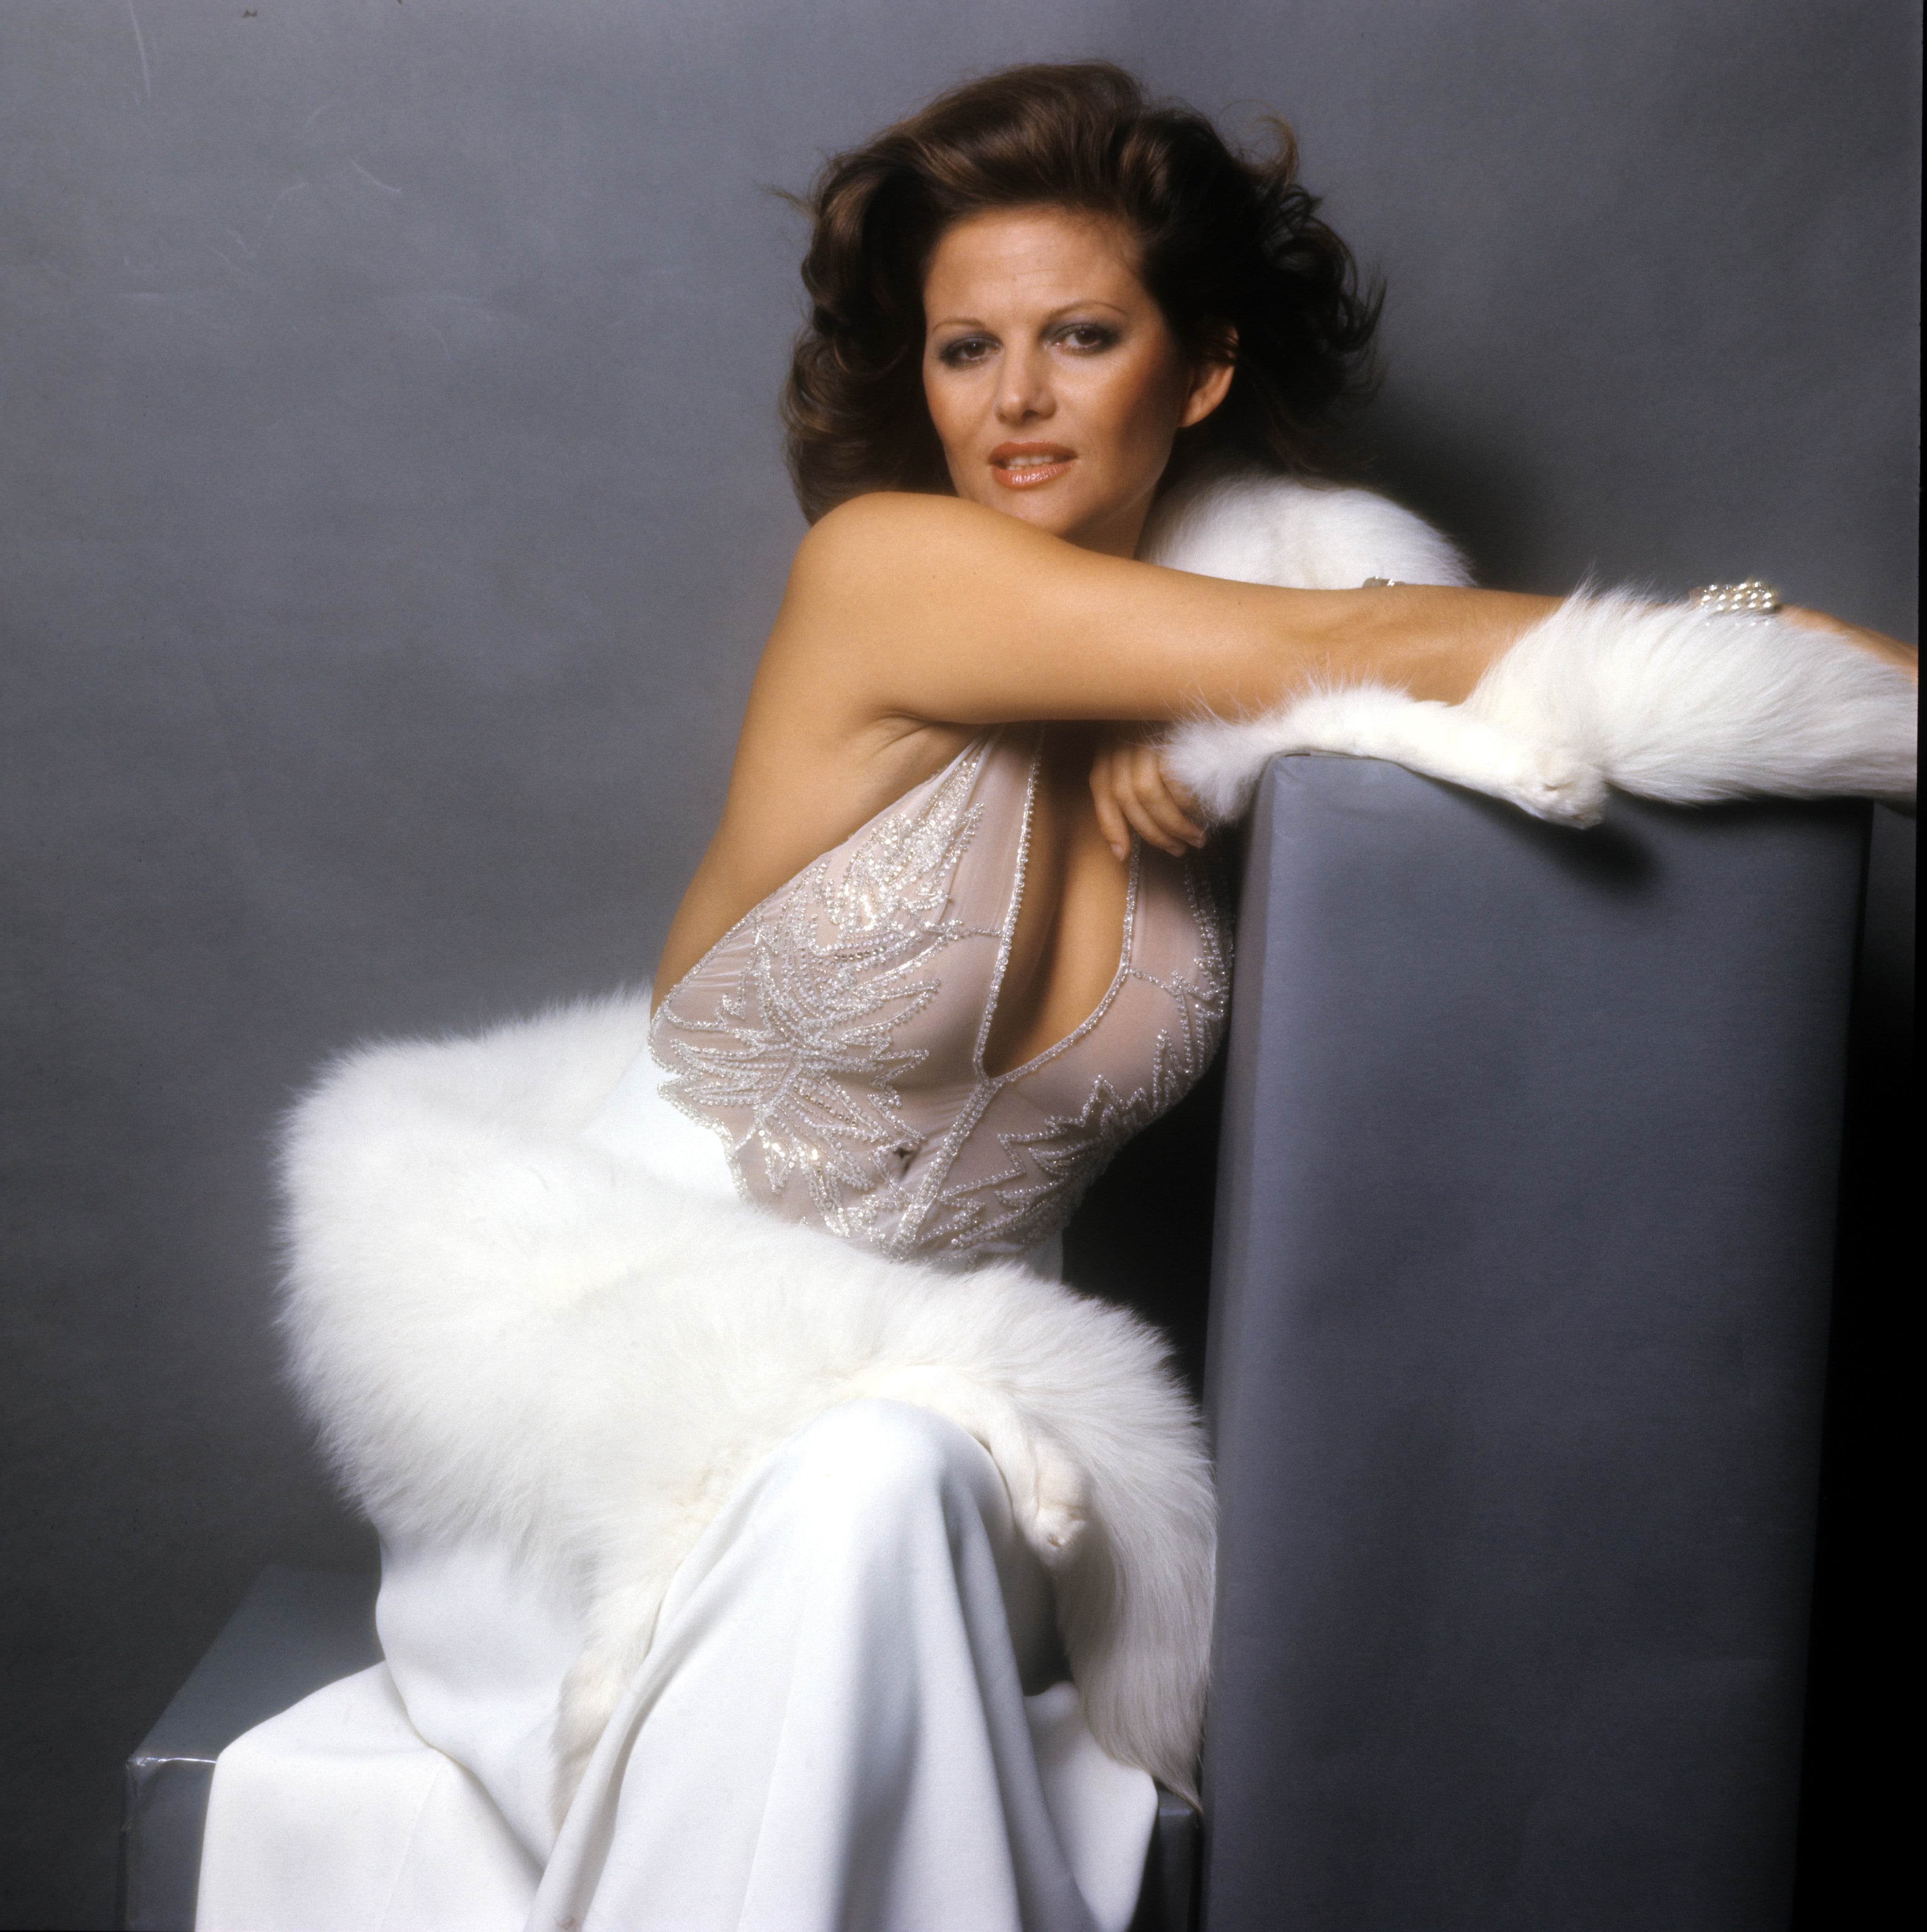 Claudia Cardinale For mobile